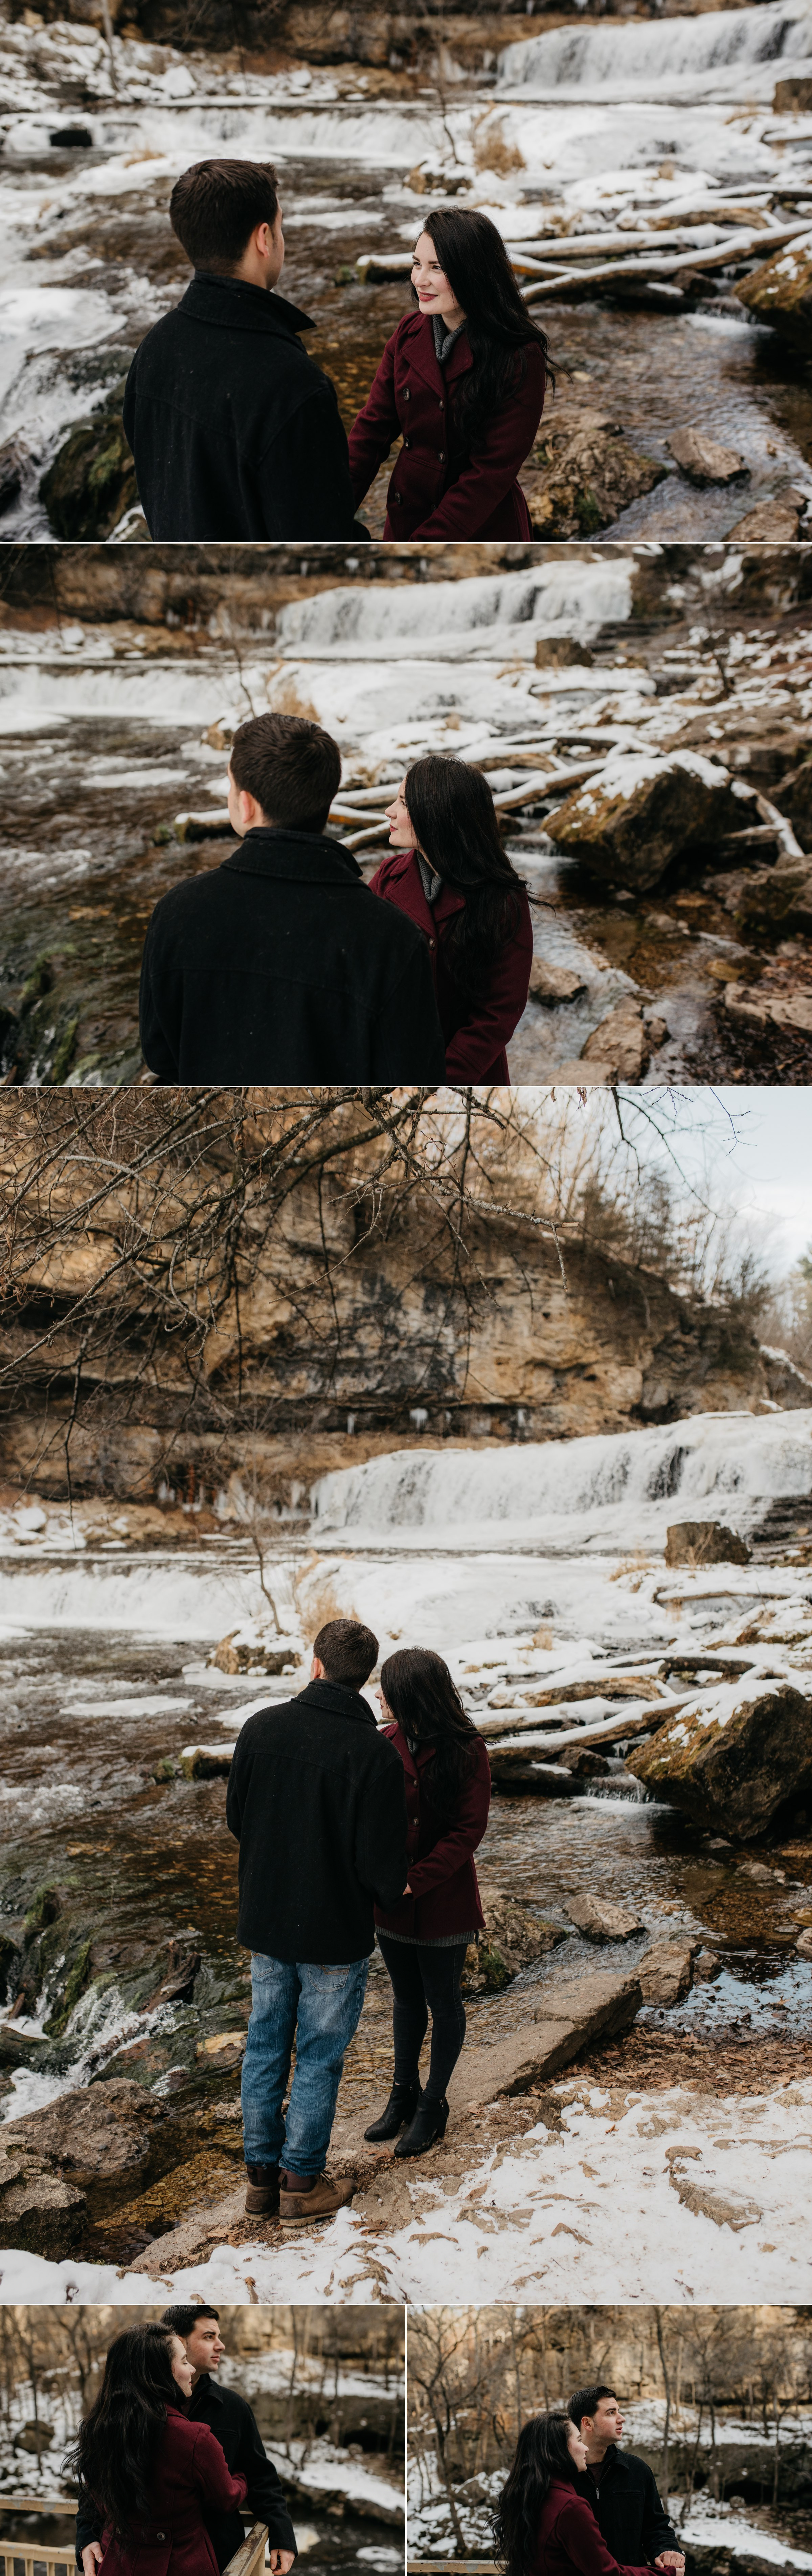 austin-minneapolis-elopement-photographer-willow-river-spain-france-costa-rica-best-family-affordable_0030.jpg